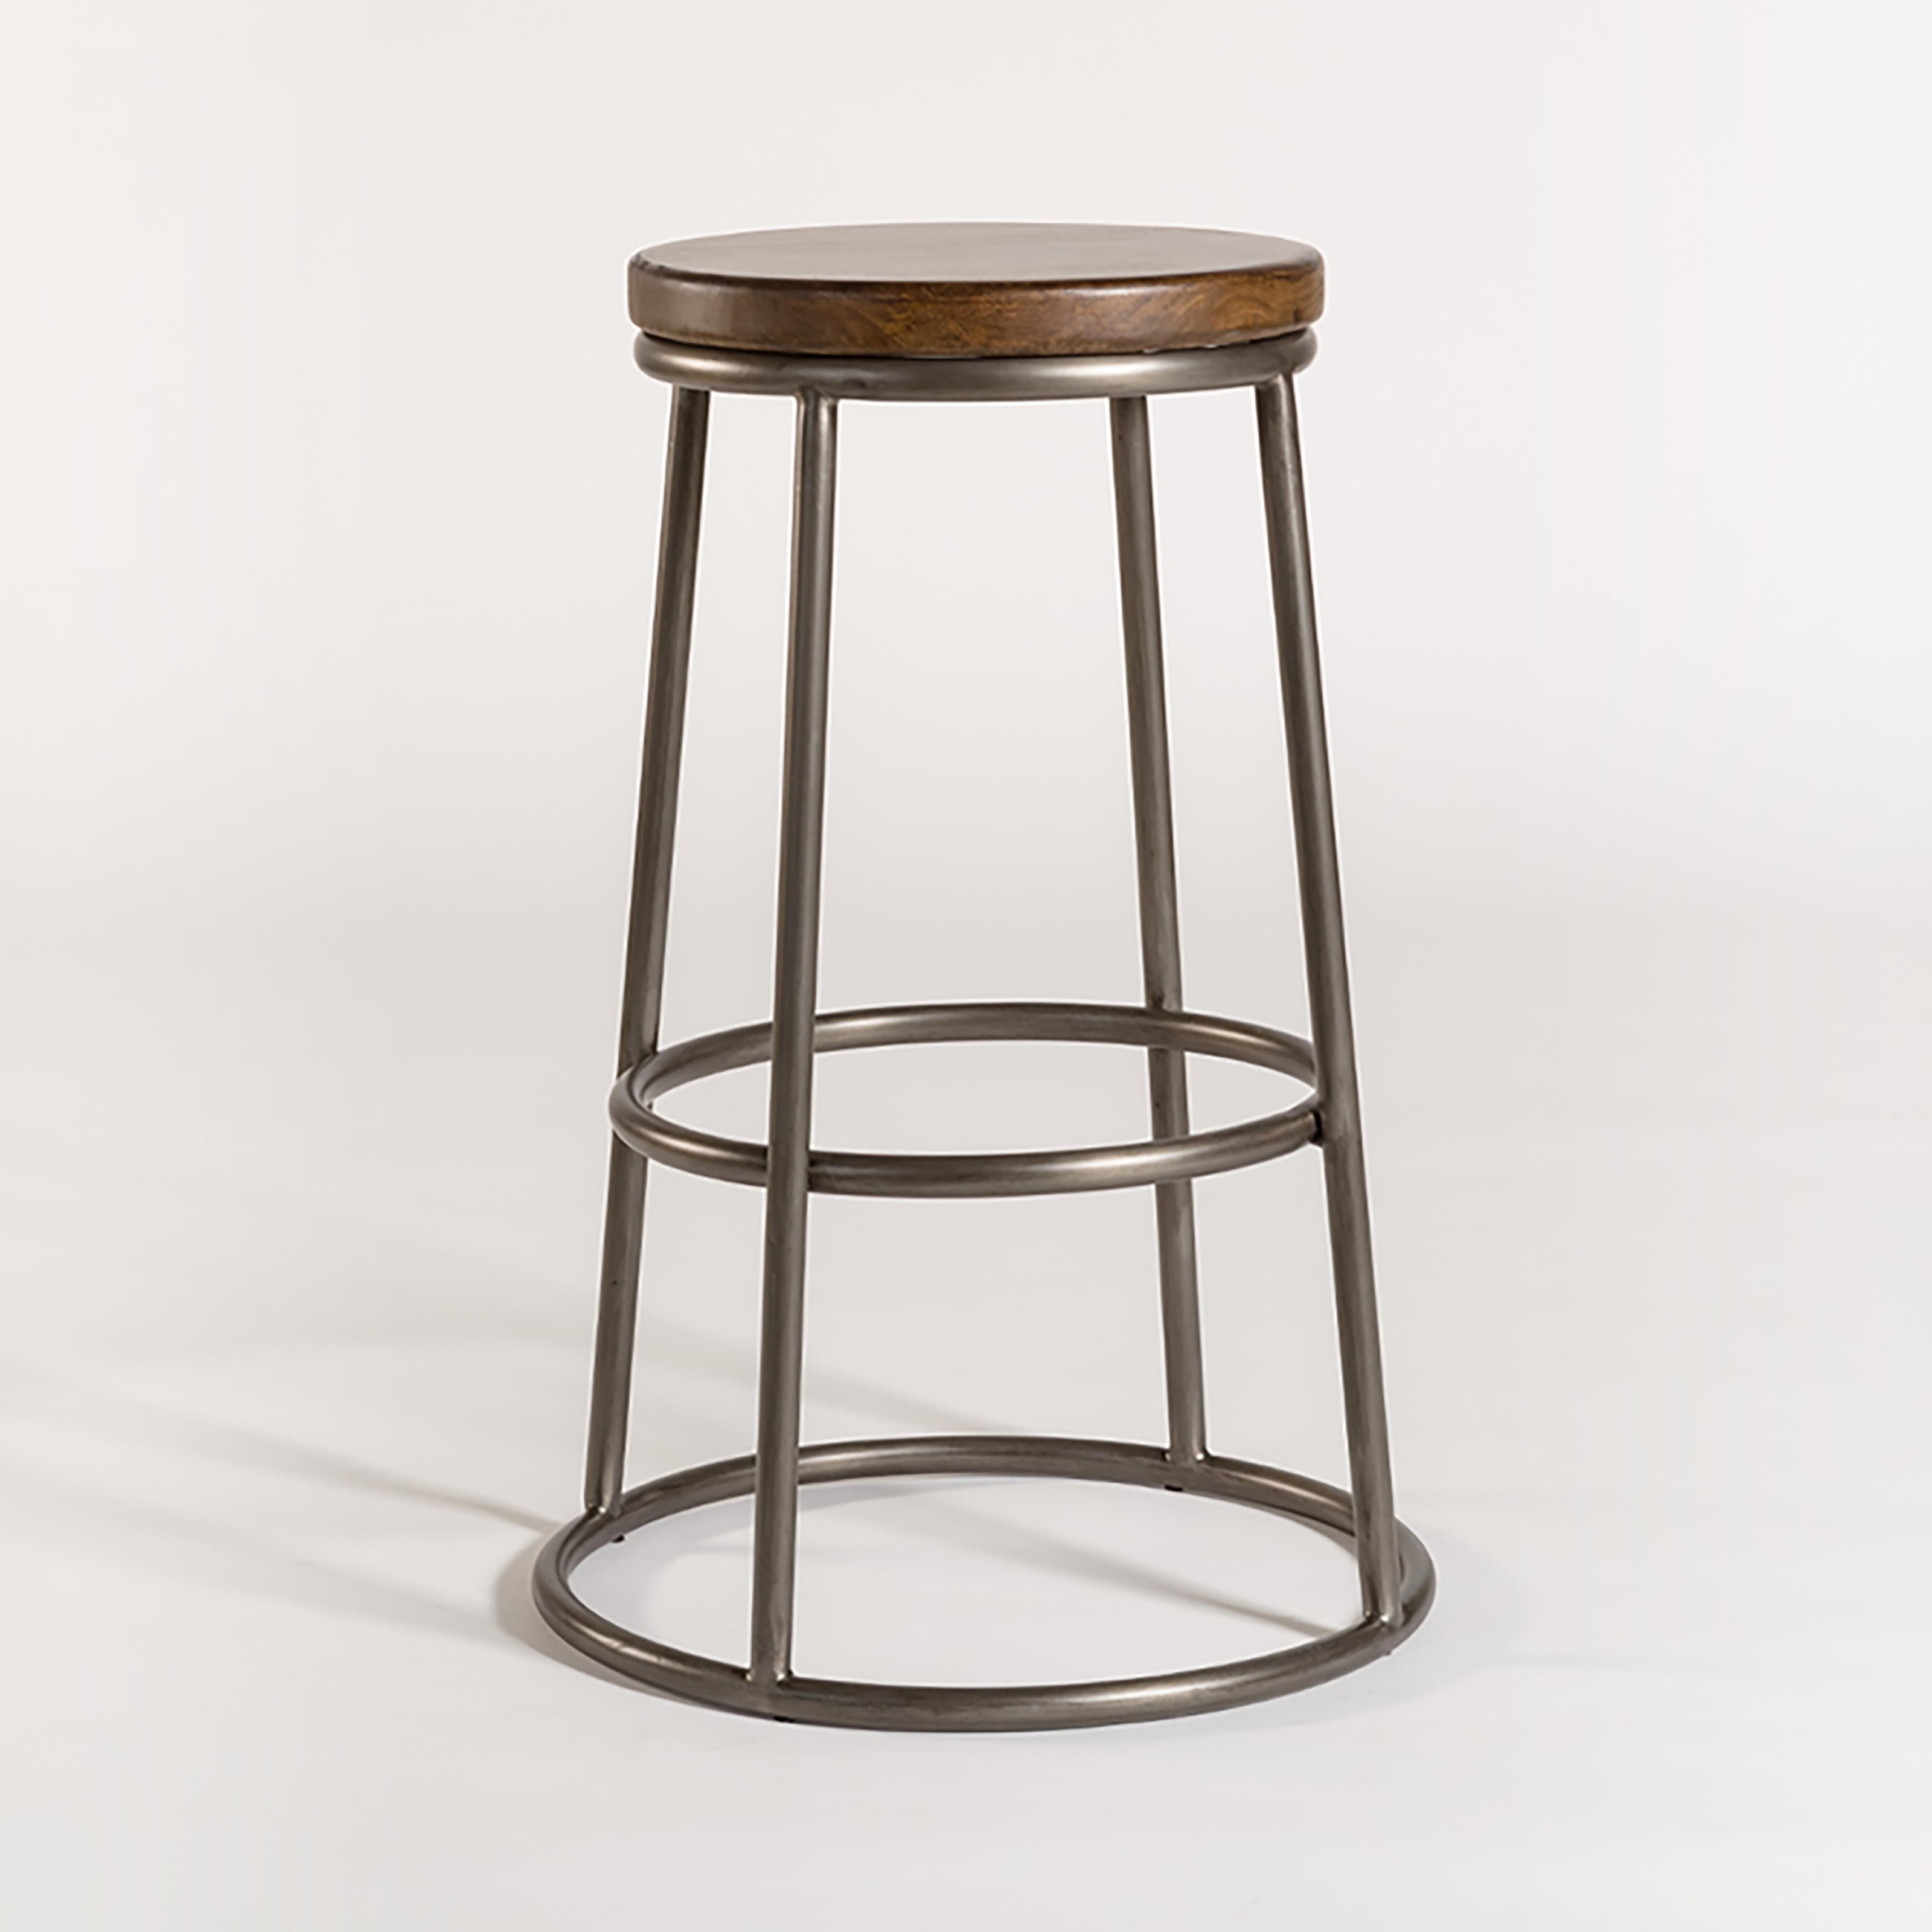 AT006 Barstool by Belfort Leather at Belfort Furniture